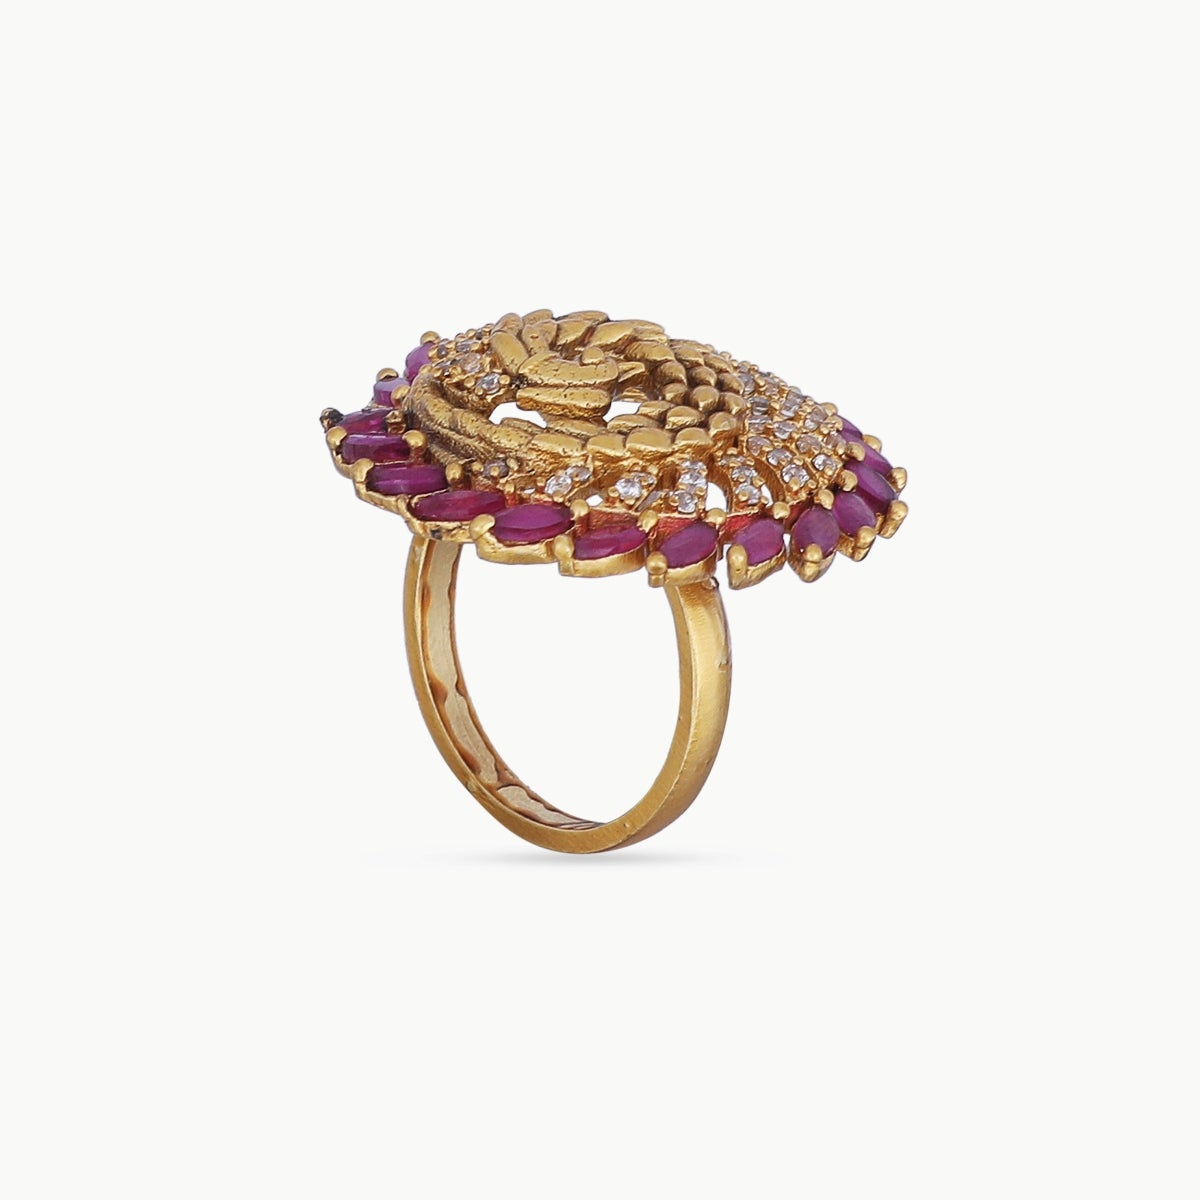 Enaya Antique Ring